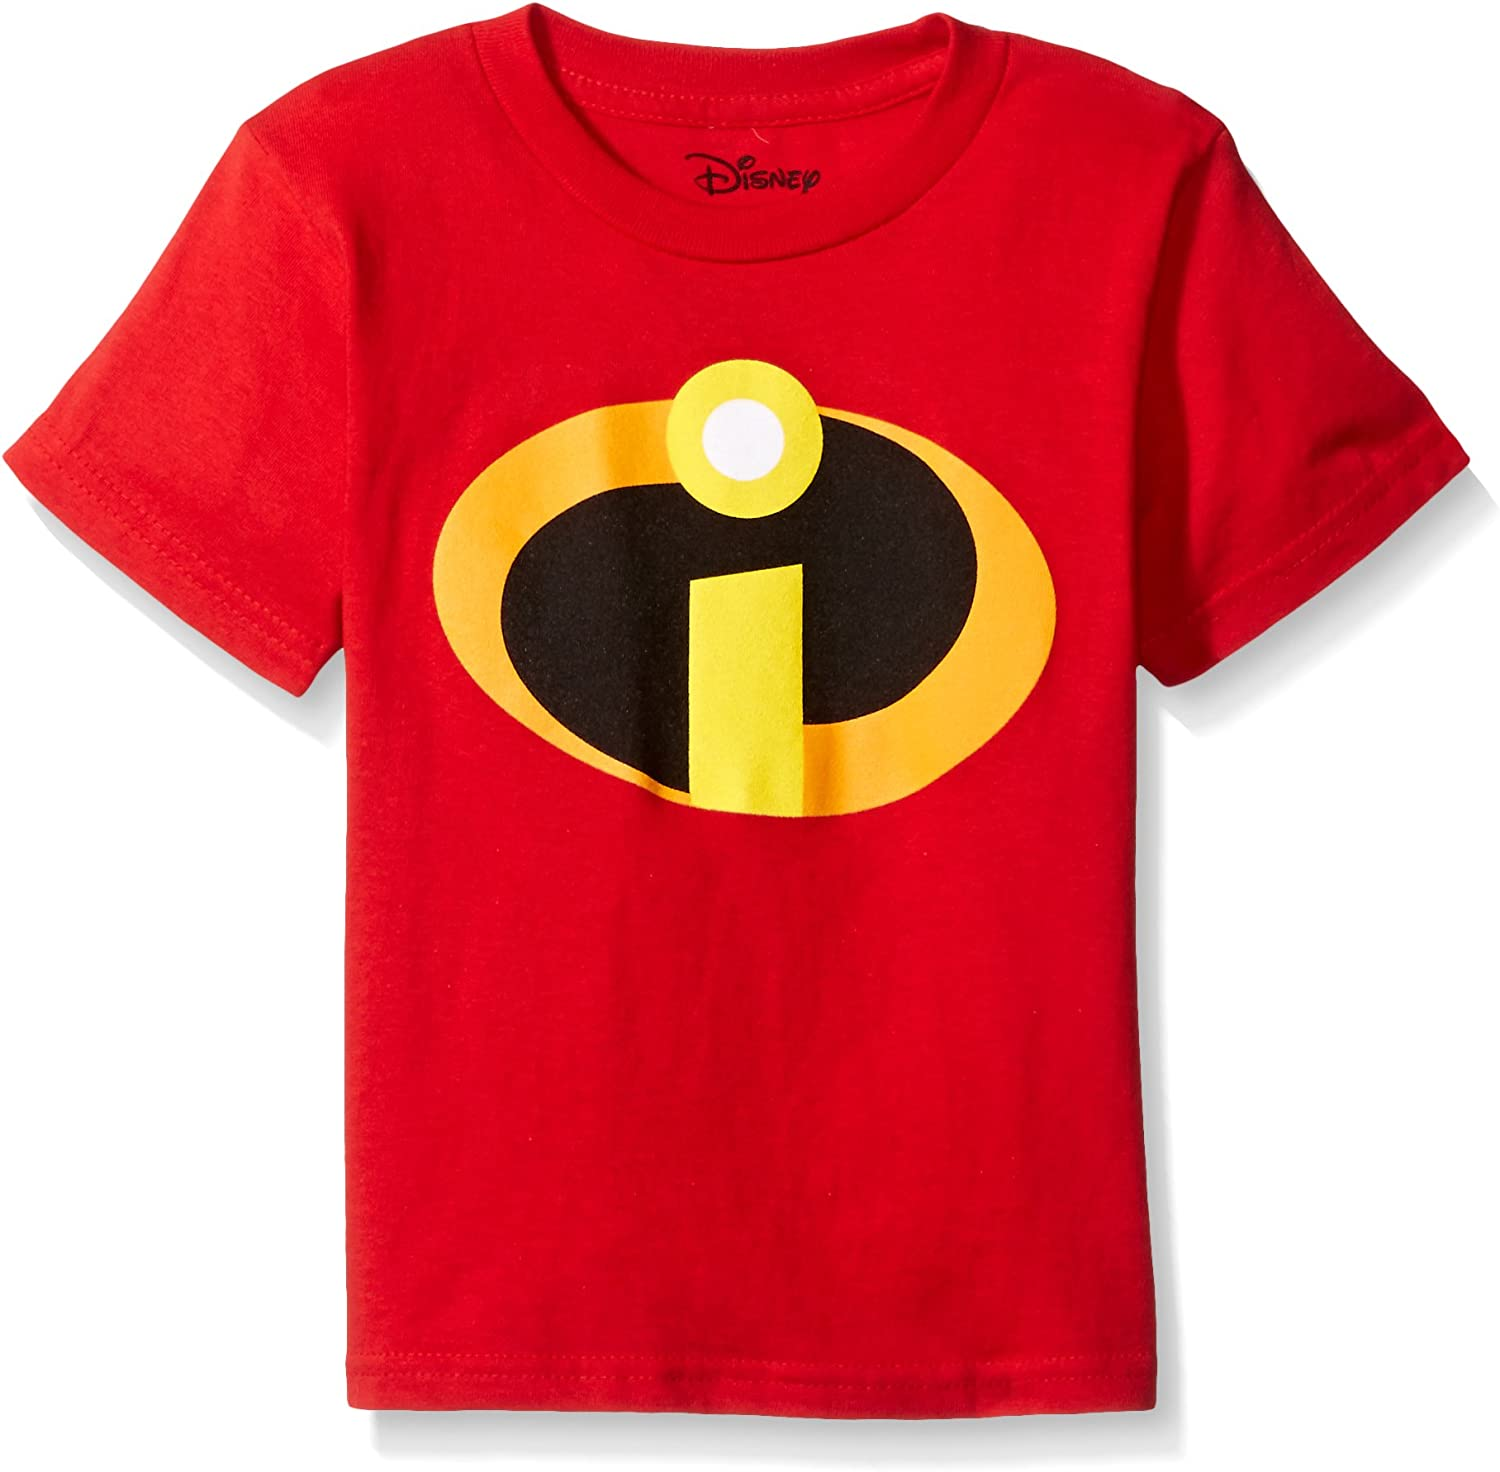 Family Portrait Size Large Incredibles 2 Boys Graphic T-Shirt